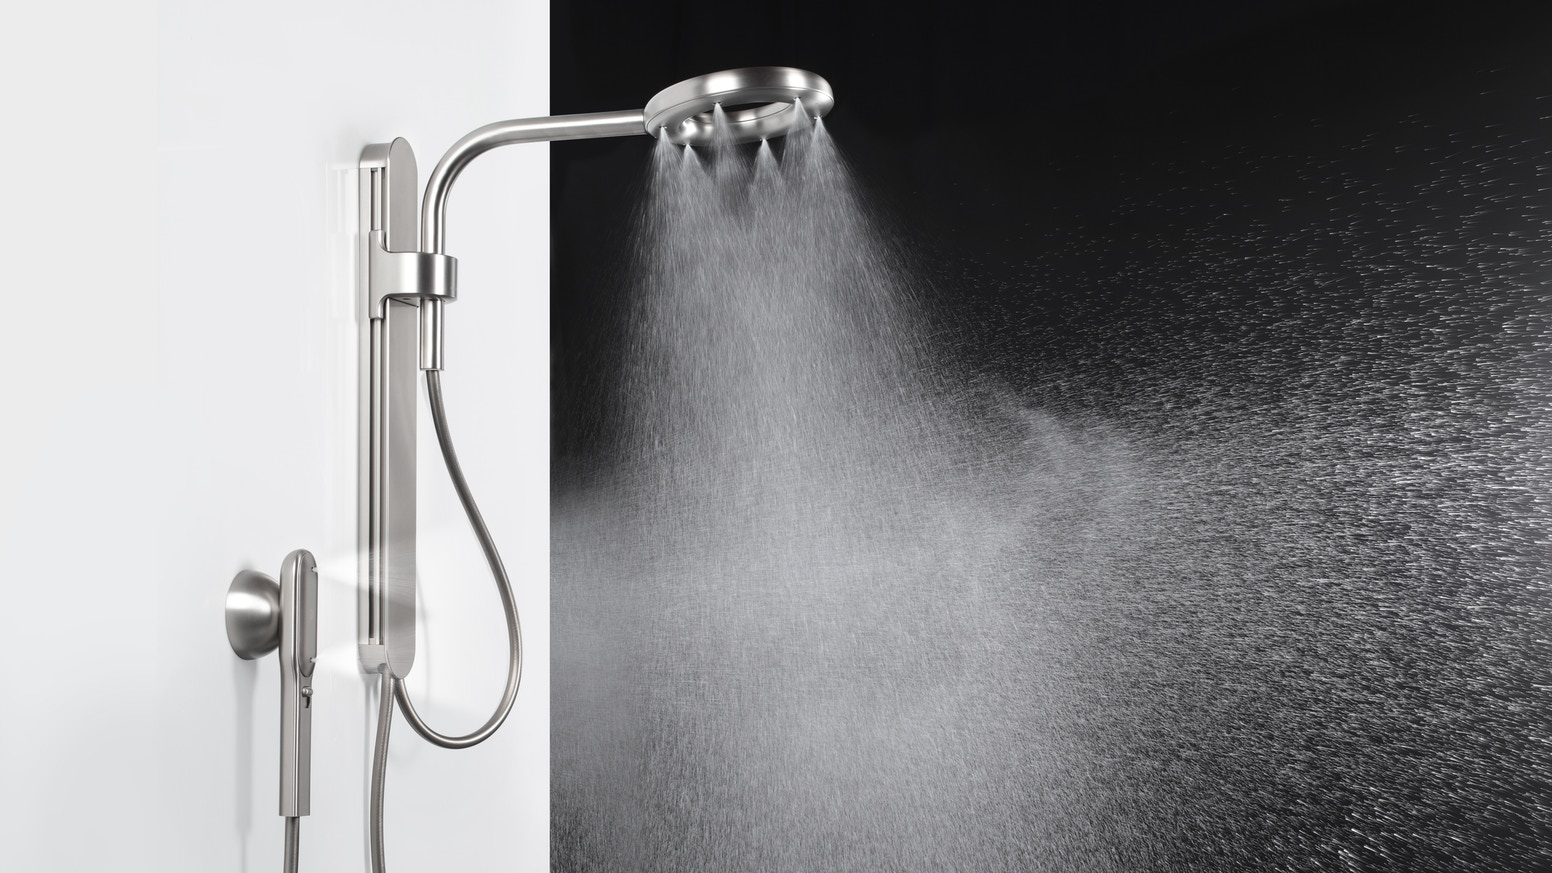 The future of showers. 2X more coverage saving half the water of standard showers.   More finishes, more power. Starting at $160.